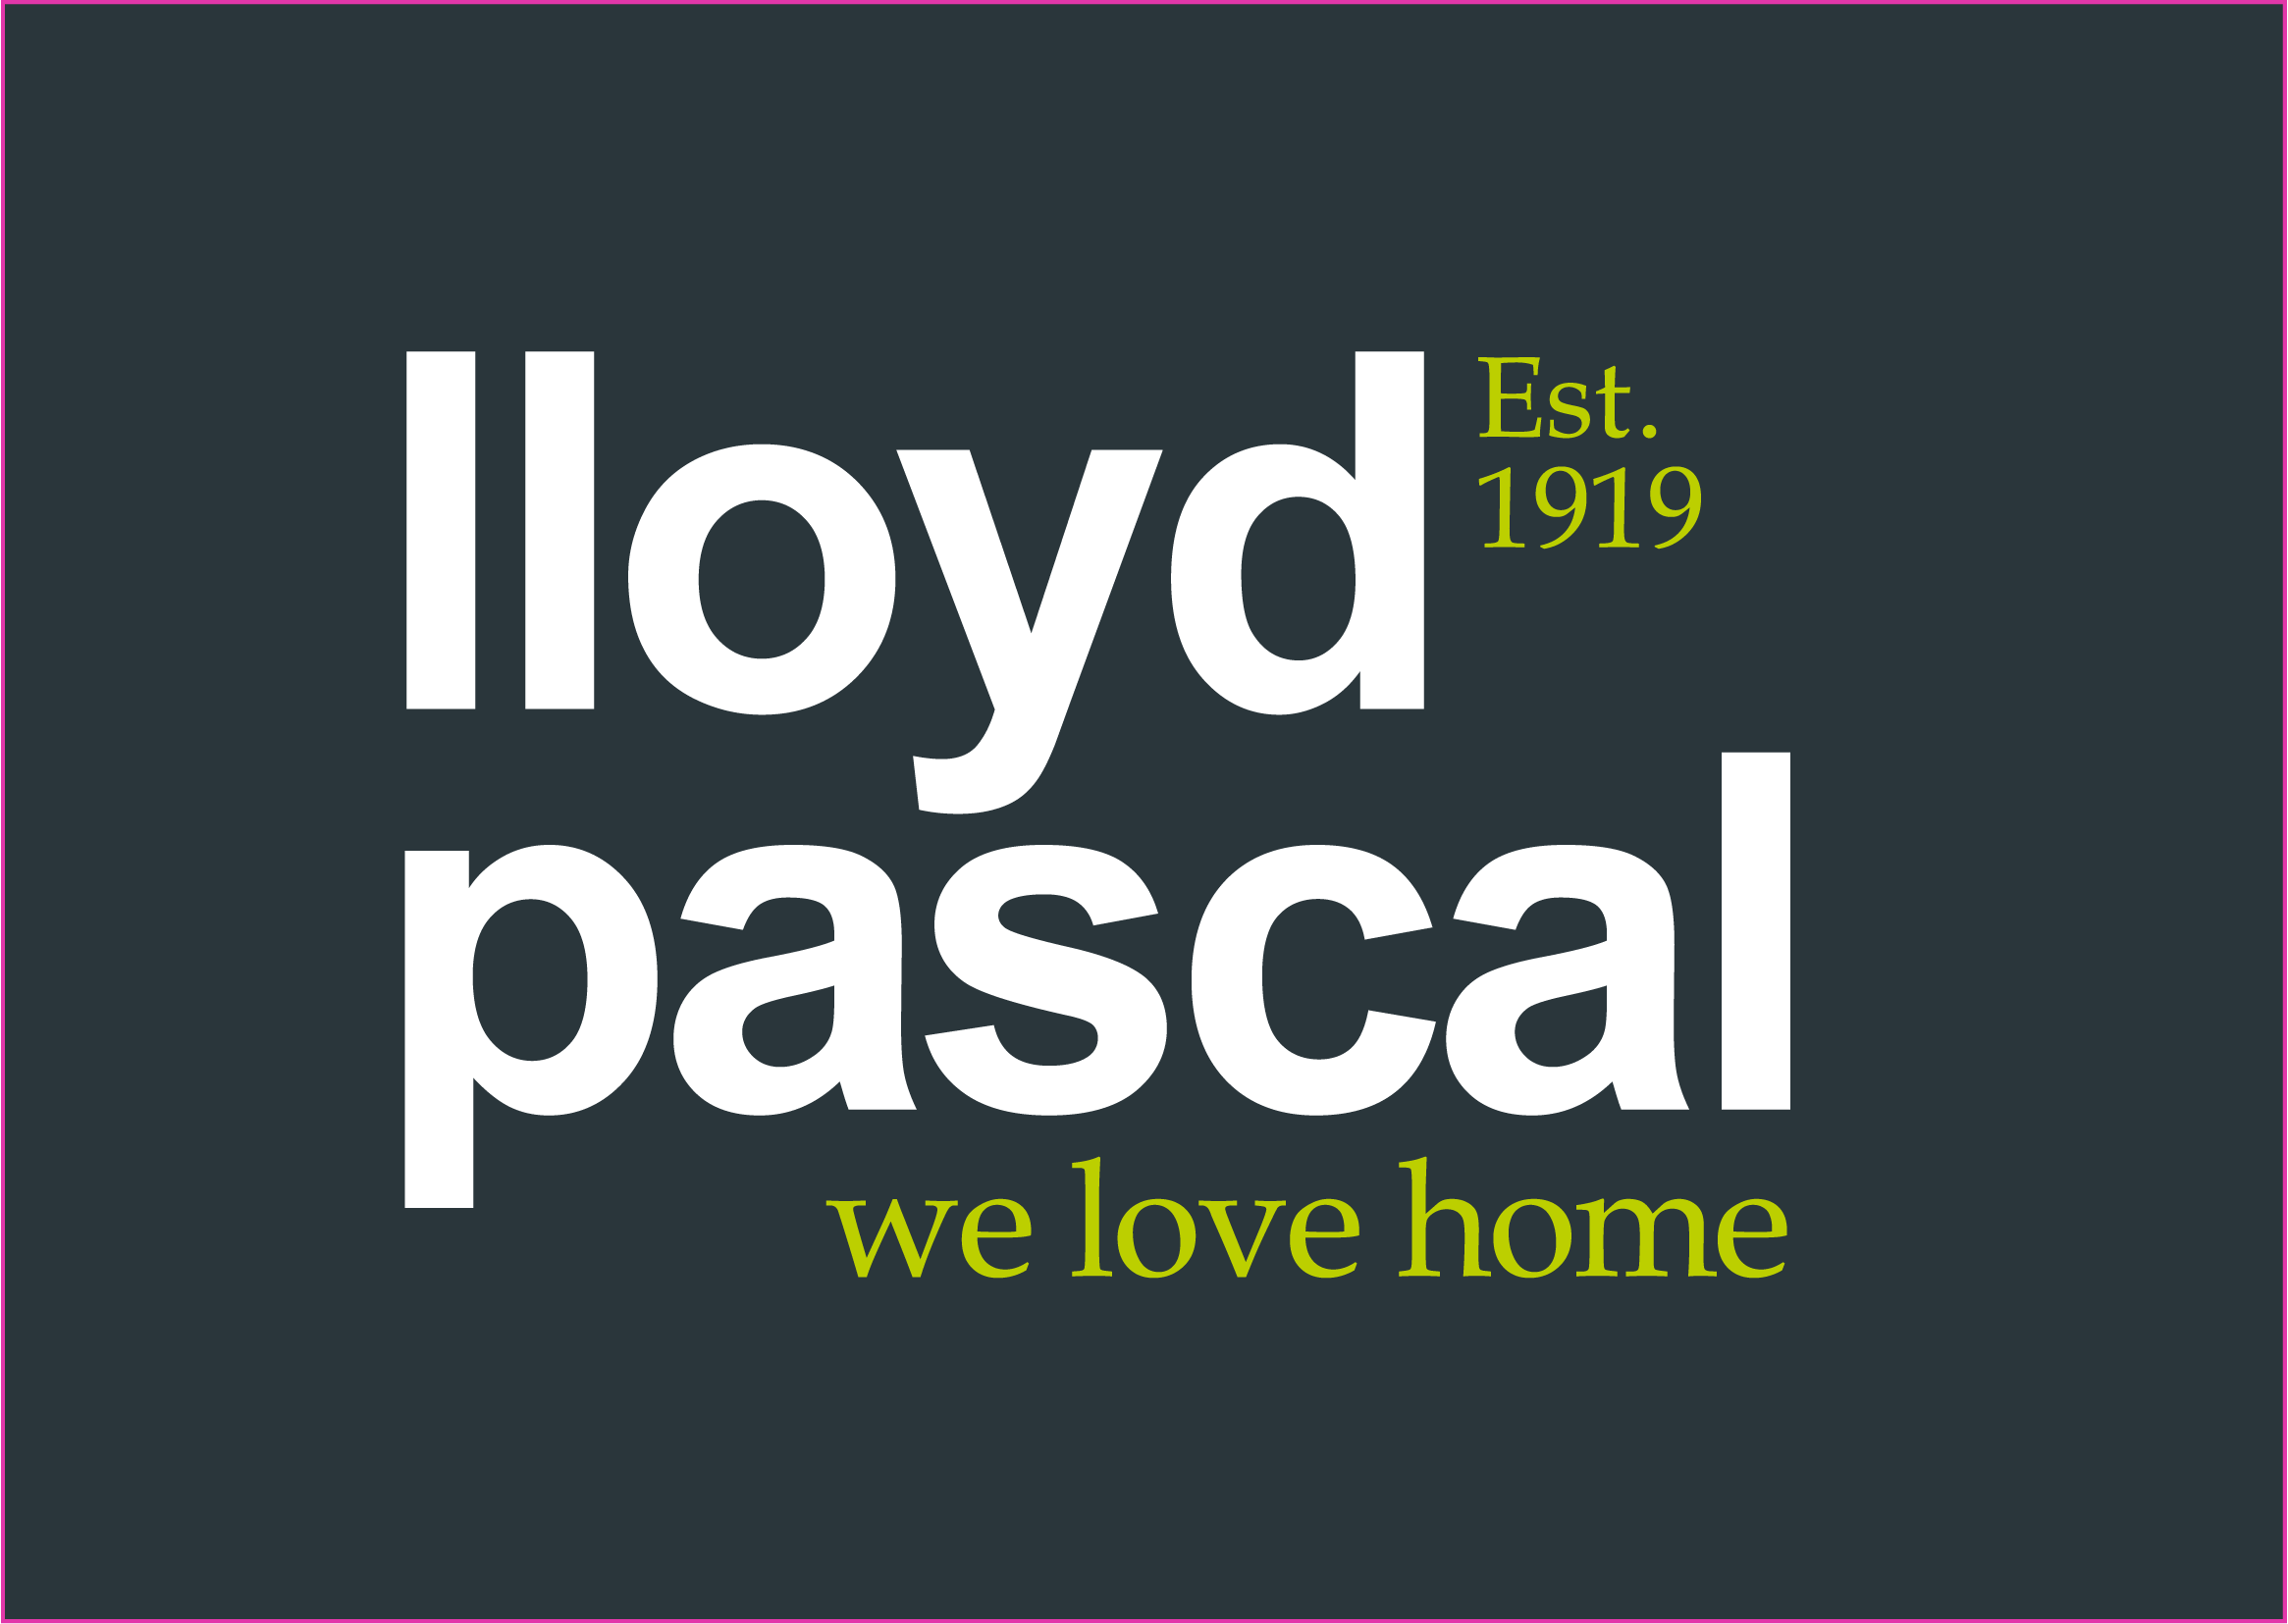 Lloyd Pascal is one of the UK's leading providers of bespoke, mass production homeware and furniture for retailers large and small